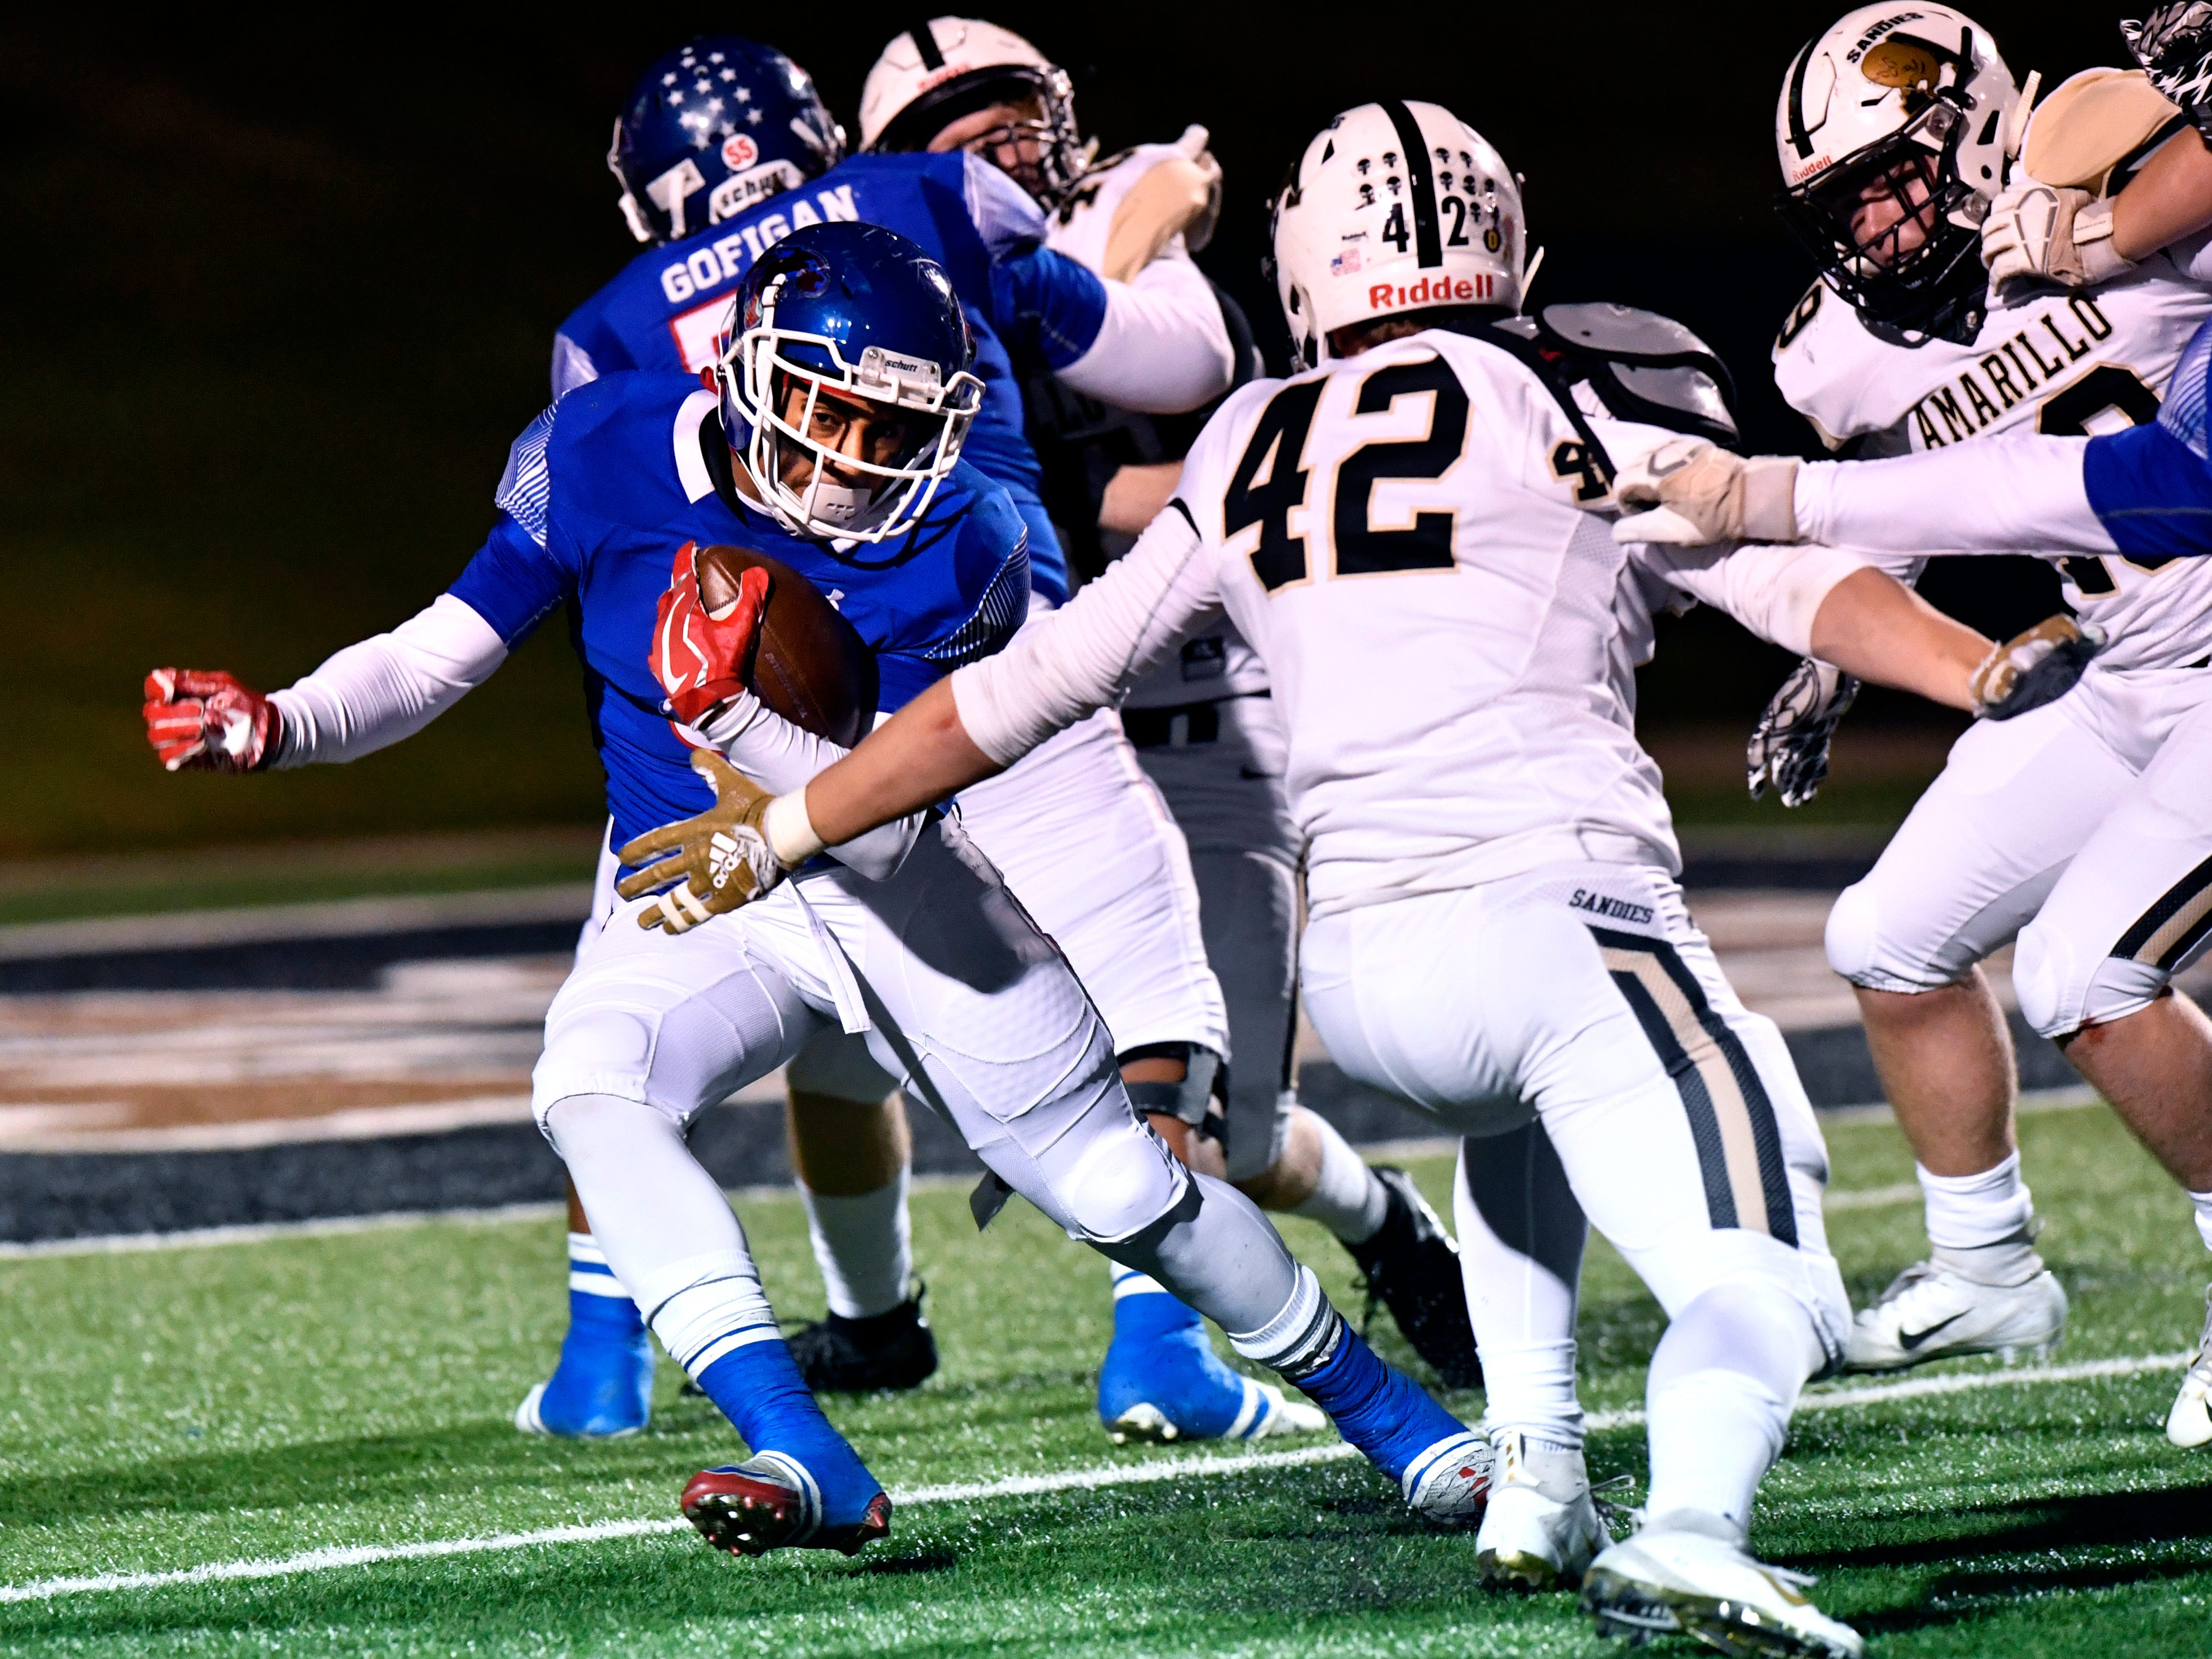 Cooper High running back Noah Garcia sprints past the outstretched arm of Sandies defensive lineman Bret Gilbert during the Cougars game against Amarillo High Friday Nov. 9, 2018. Final score was 58-27, Amarillo.